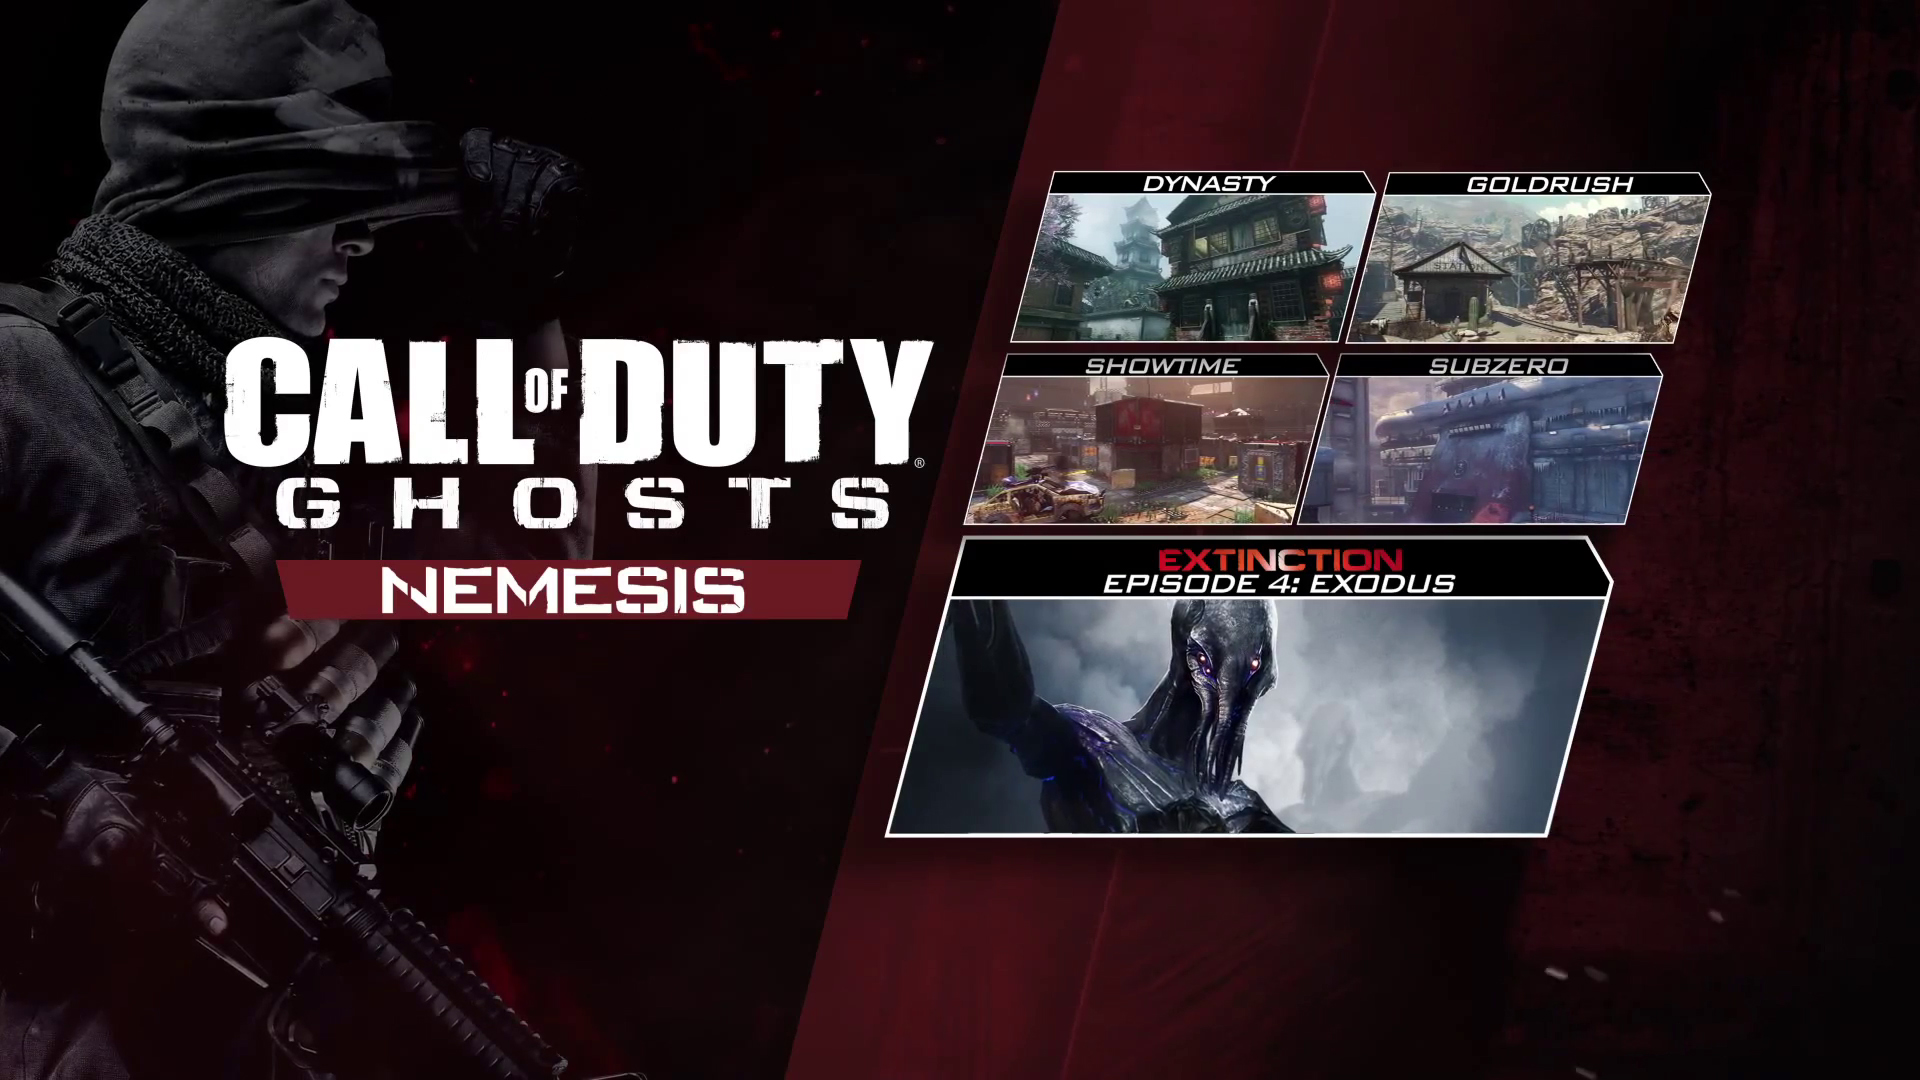 Call-of-Duty-Ghosts-Nemesis 0409